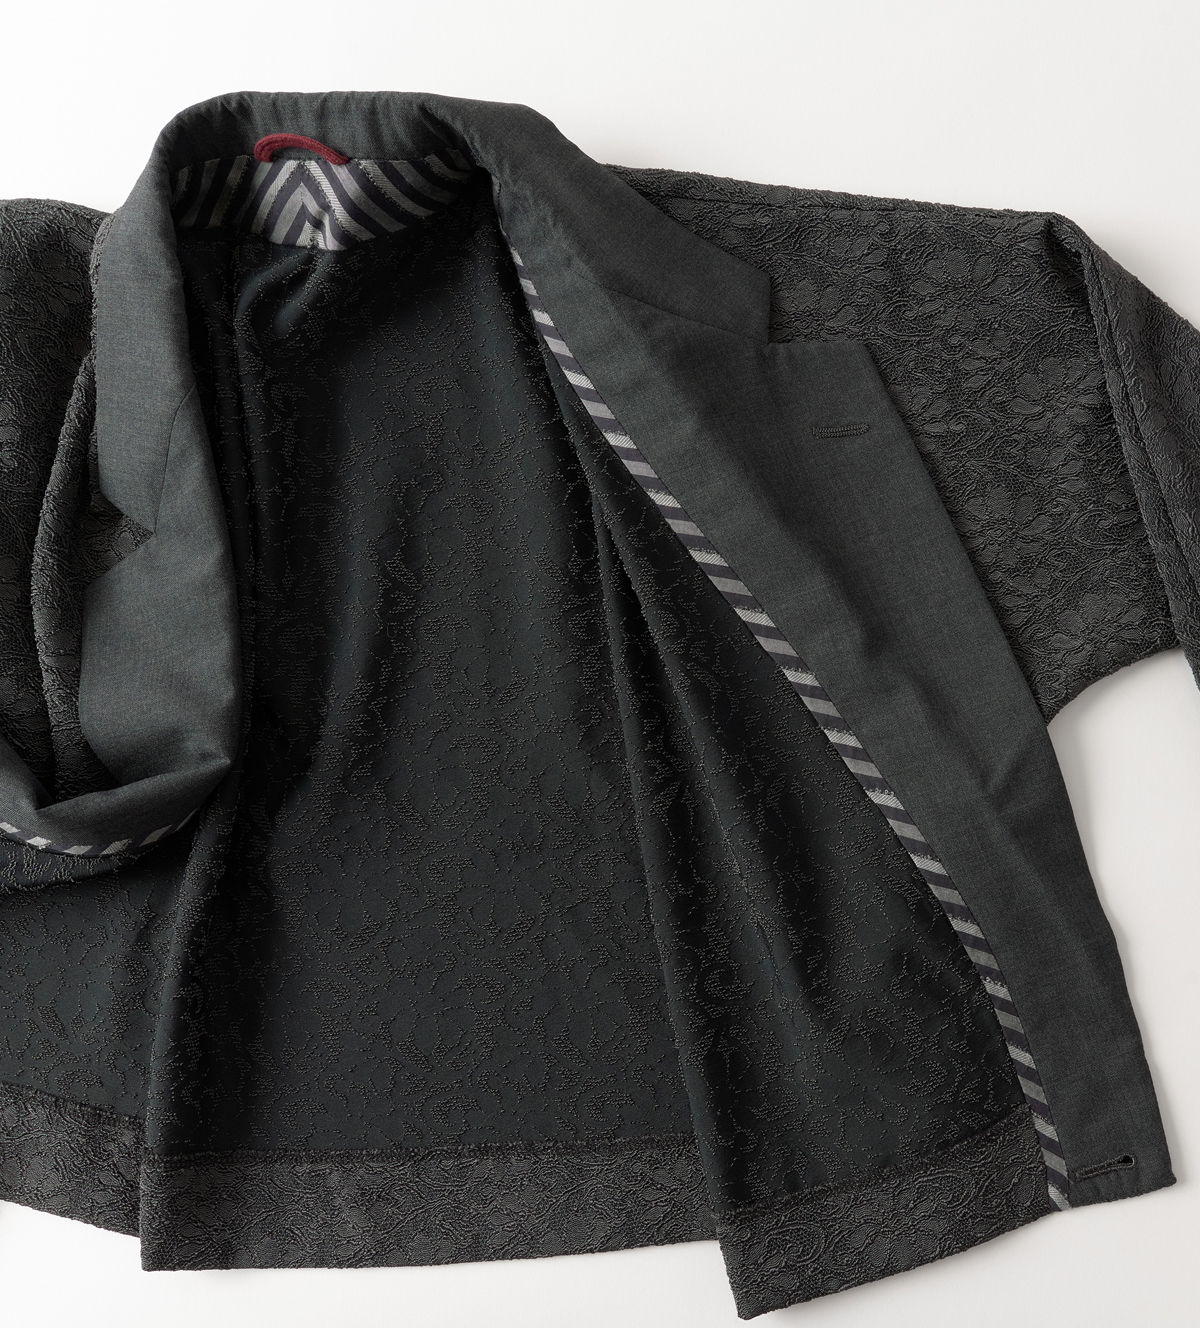 Women's Jacket lying opened on a table to reveal striped bias binding